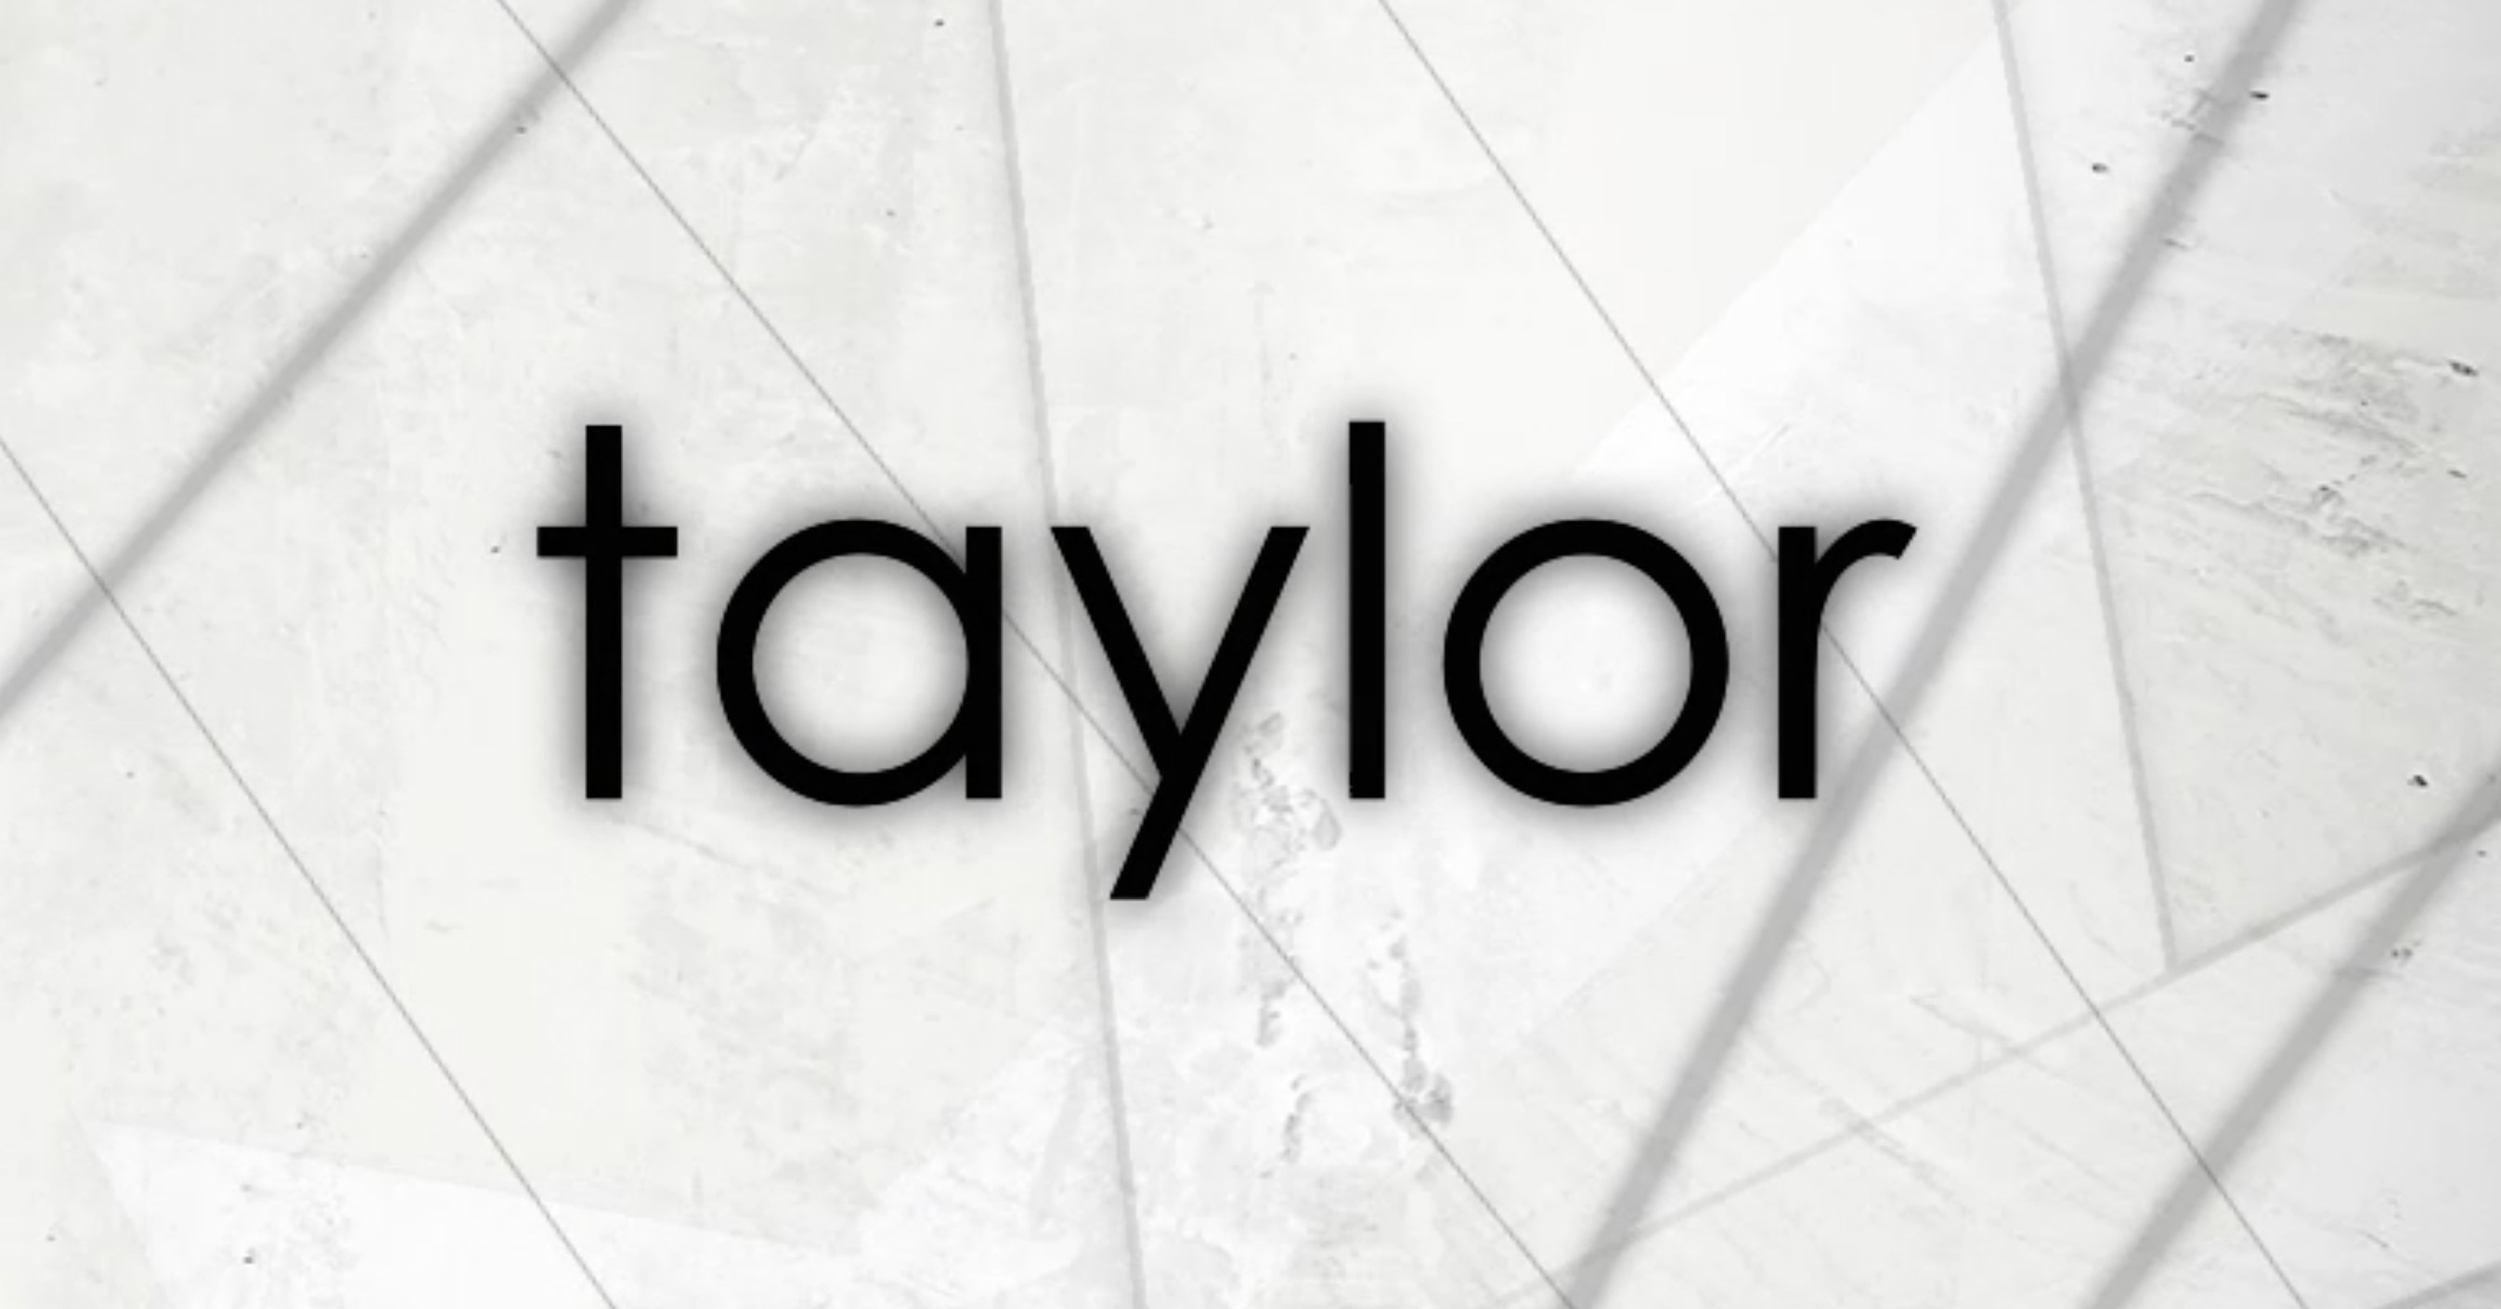 Taylor 2013 Video